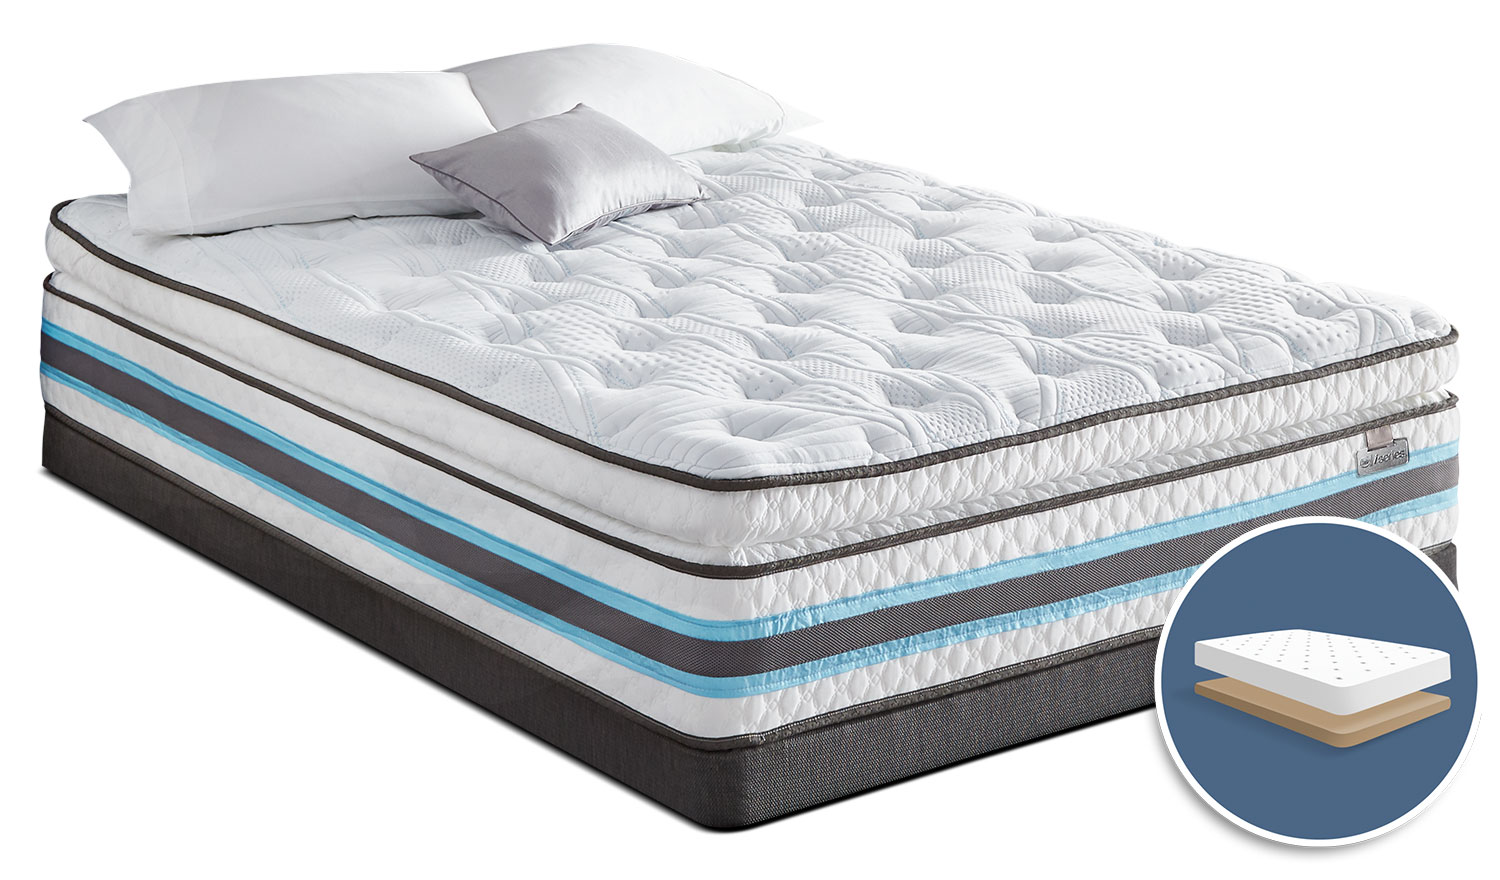 Mattresses and Bedding - Serta iSeries® Insatiable Plush Super Pillow-Top Low-Profile Queen Mattress Set